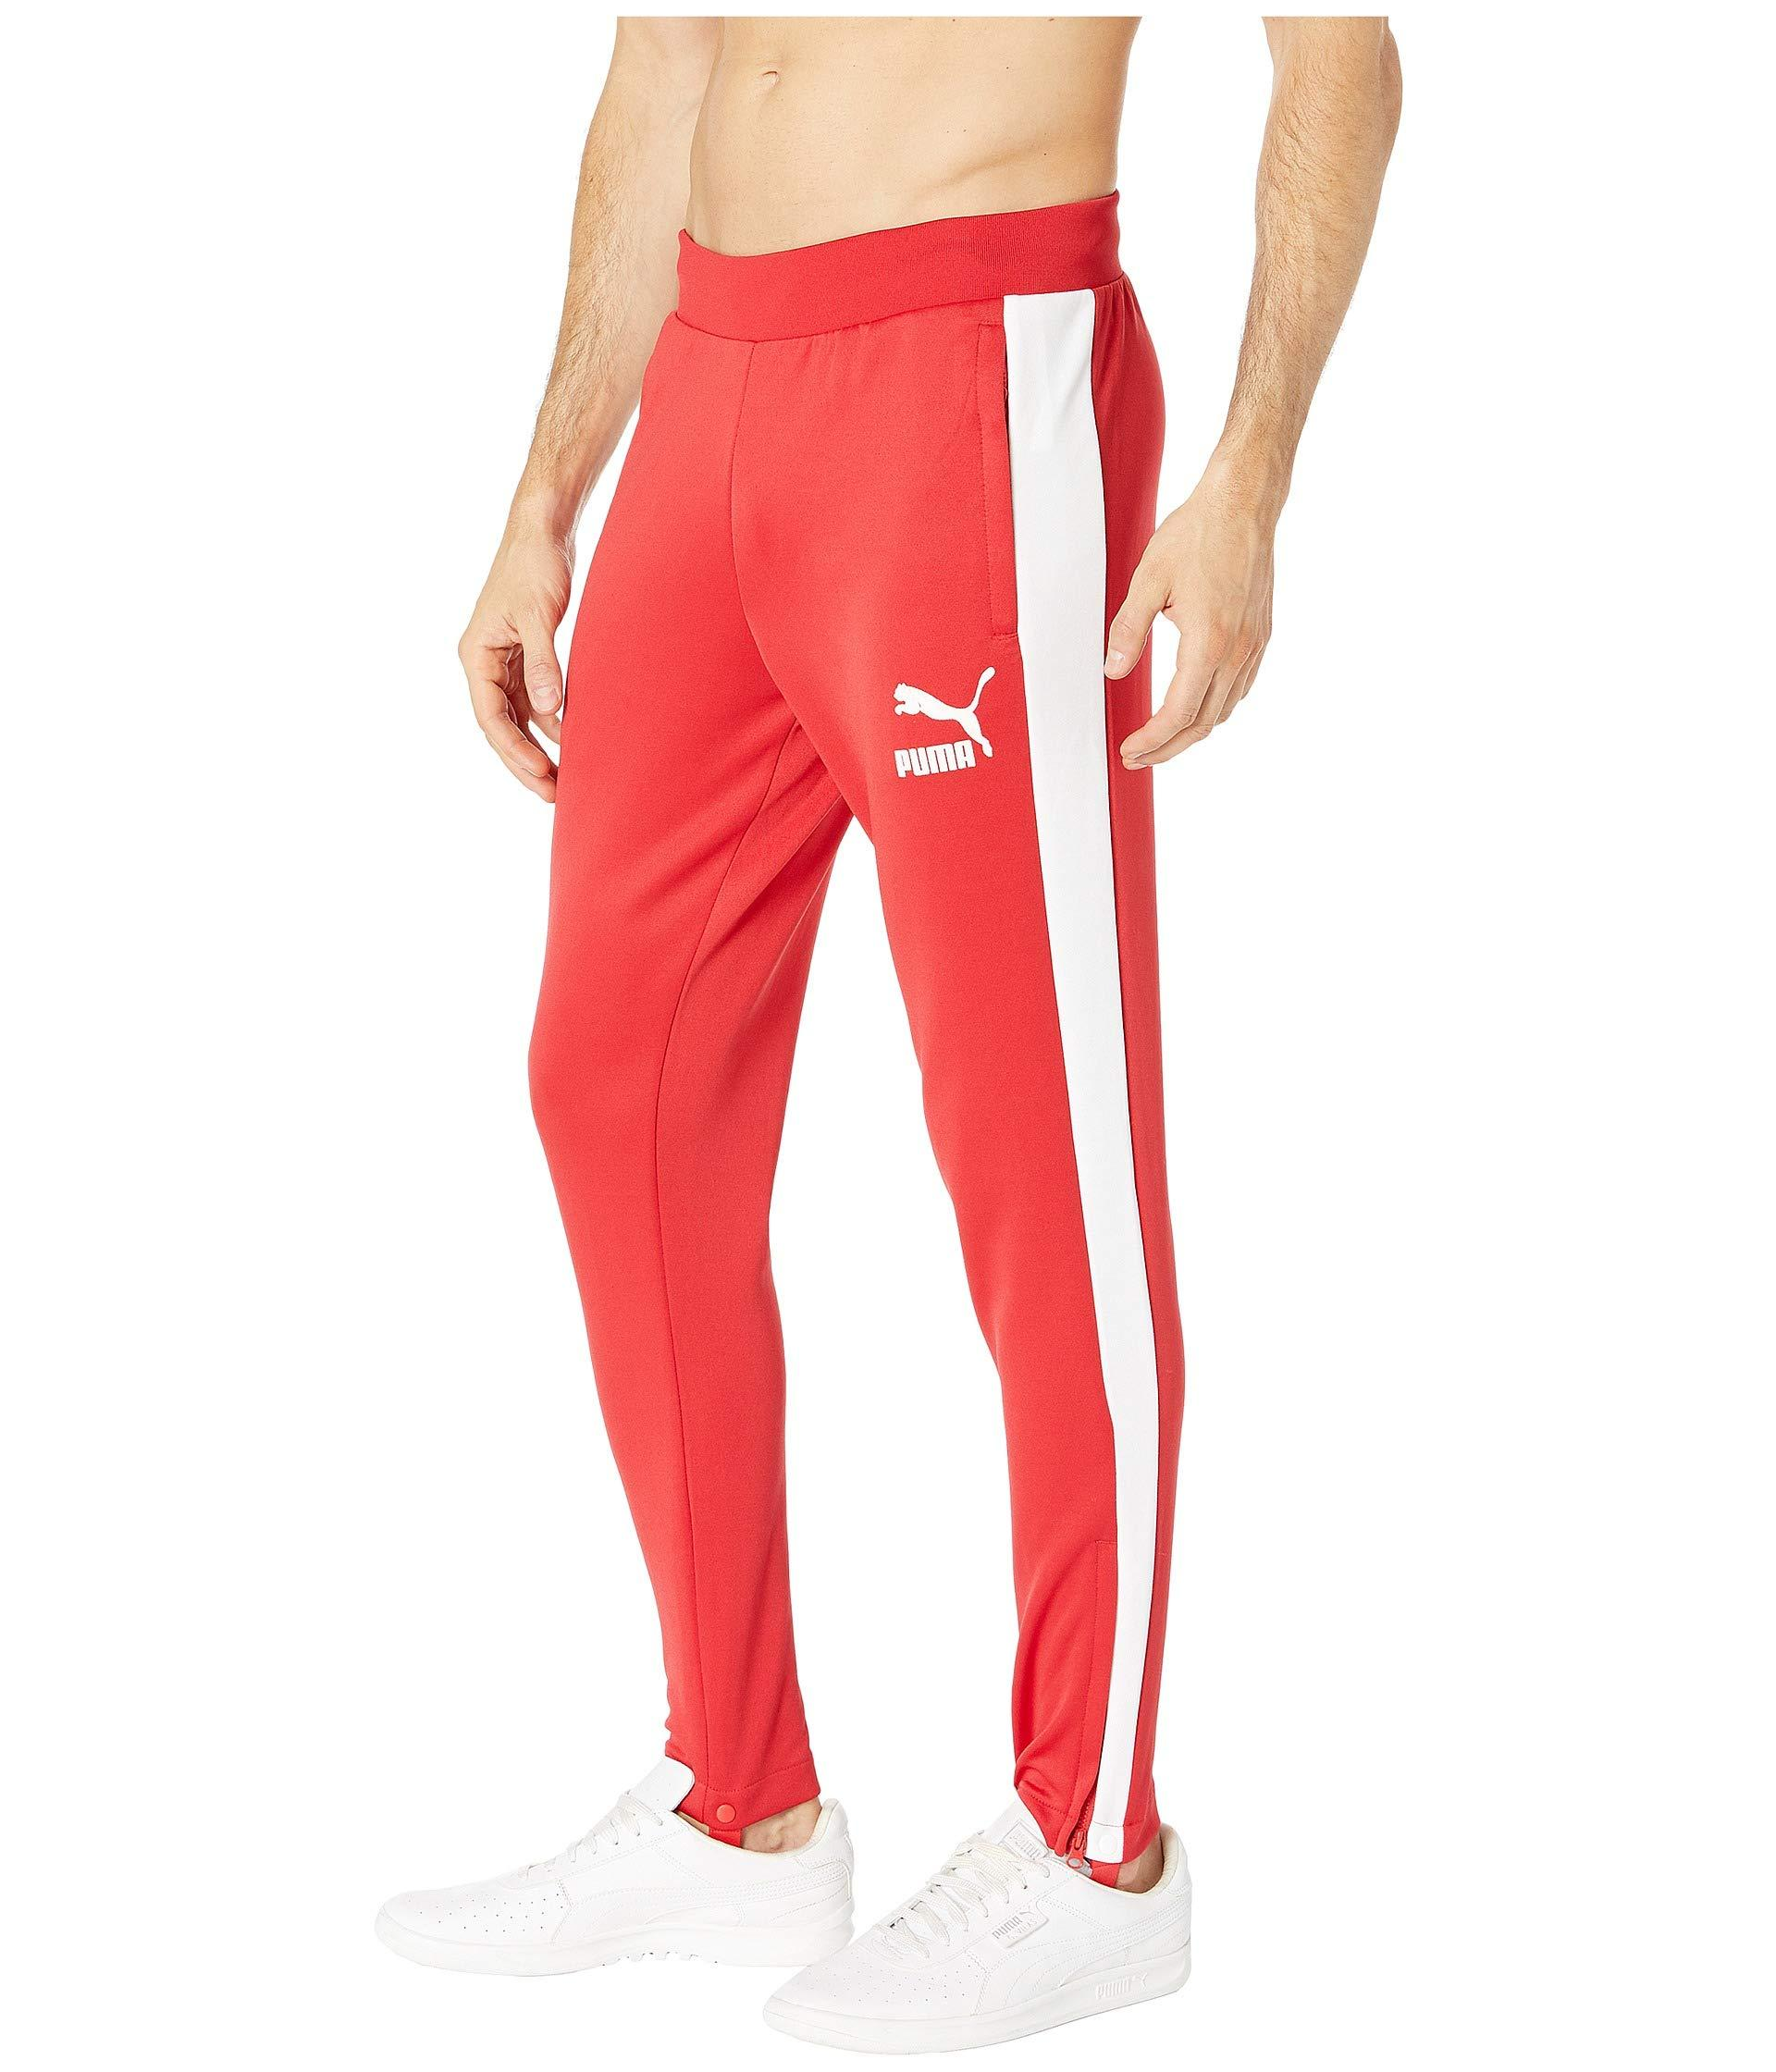 0030b9d76e9a Lyst - PUMA T7 Vintage Track Pants in Red for Men